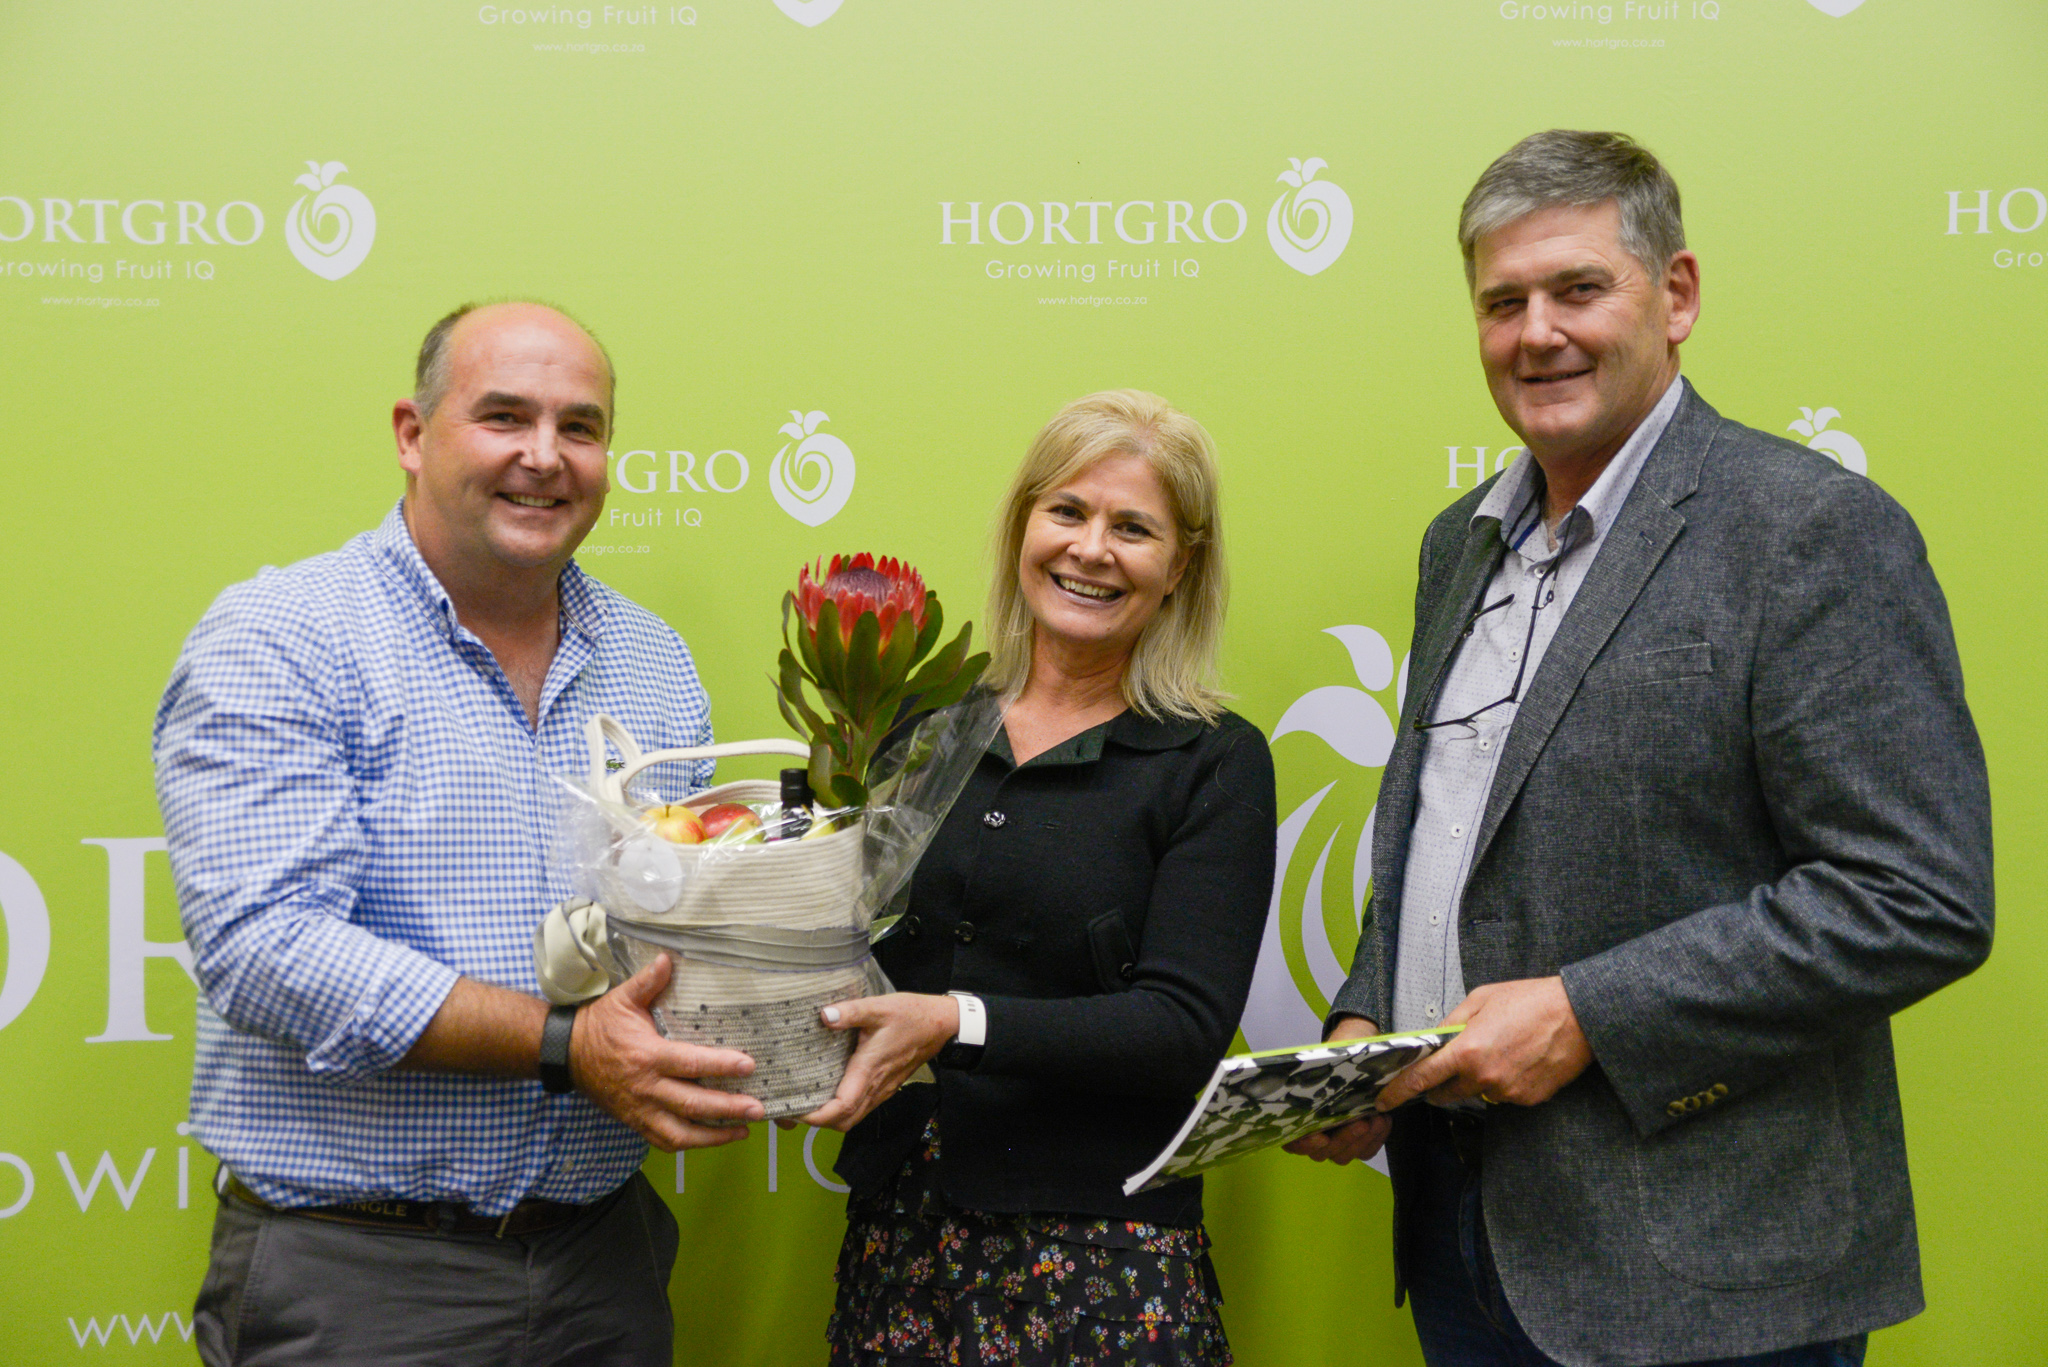 Hortgro Bursary Program 02